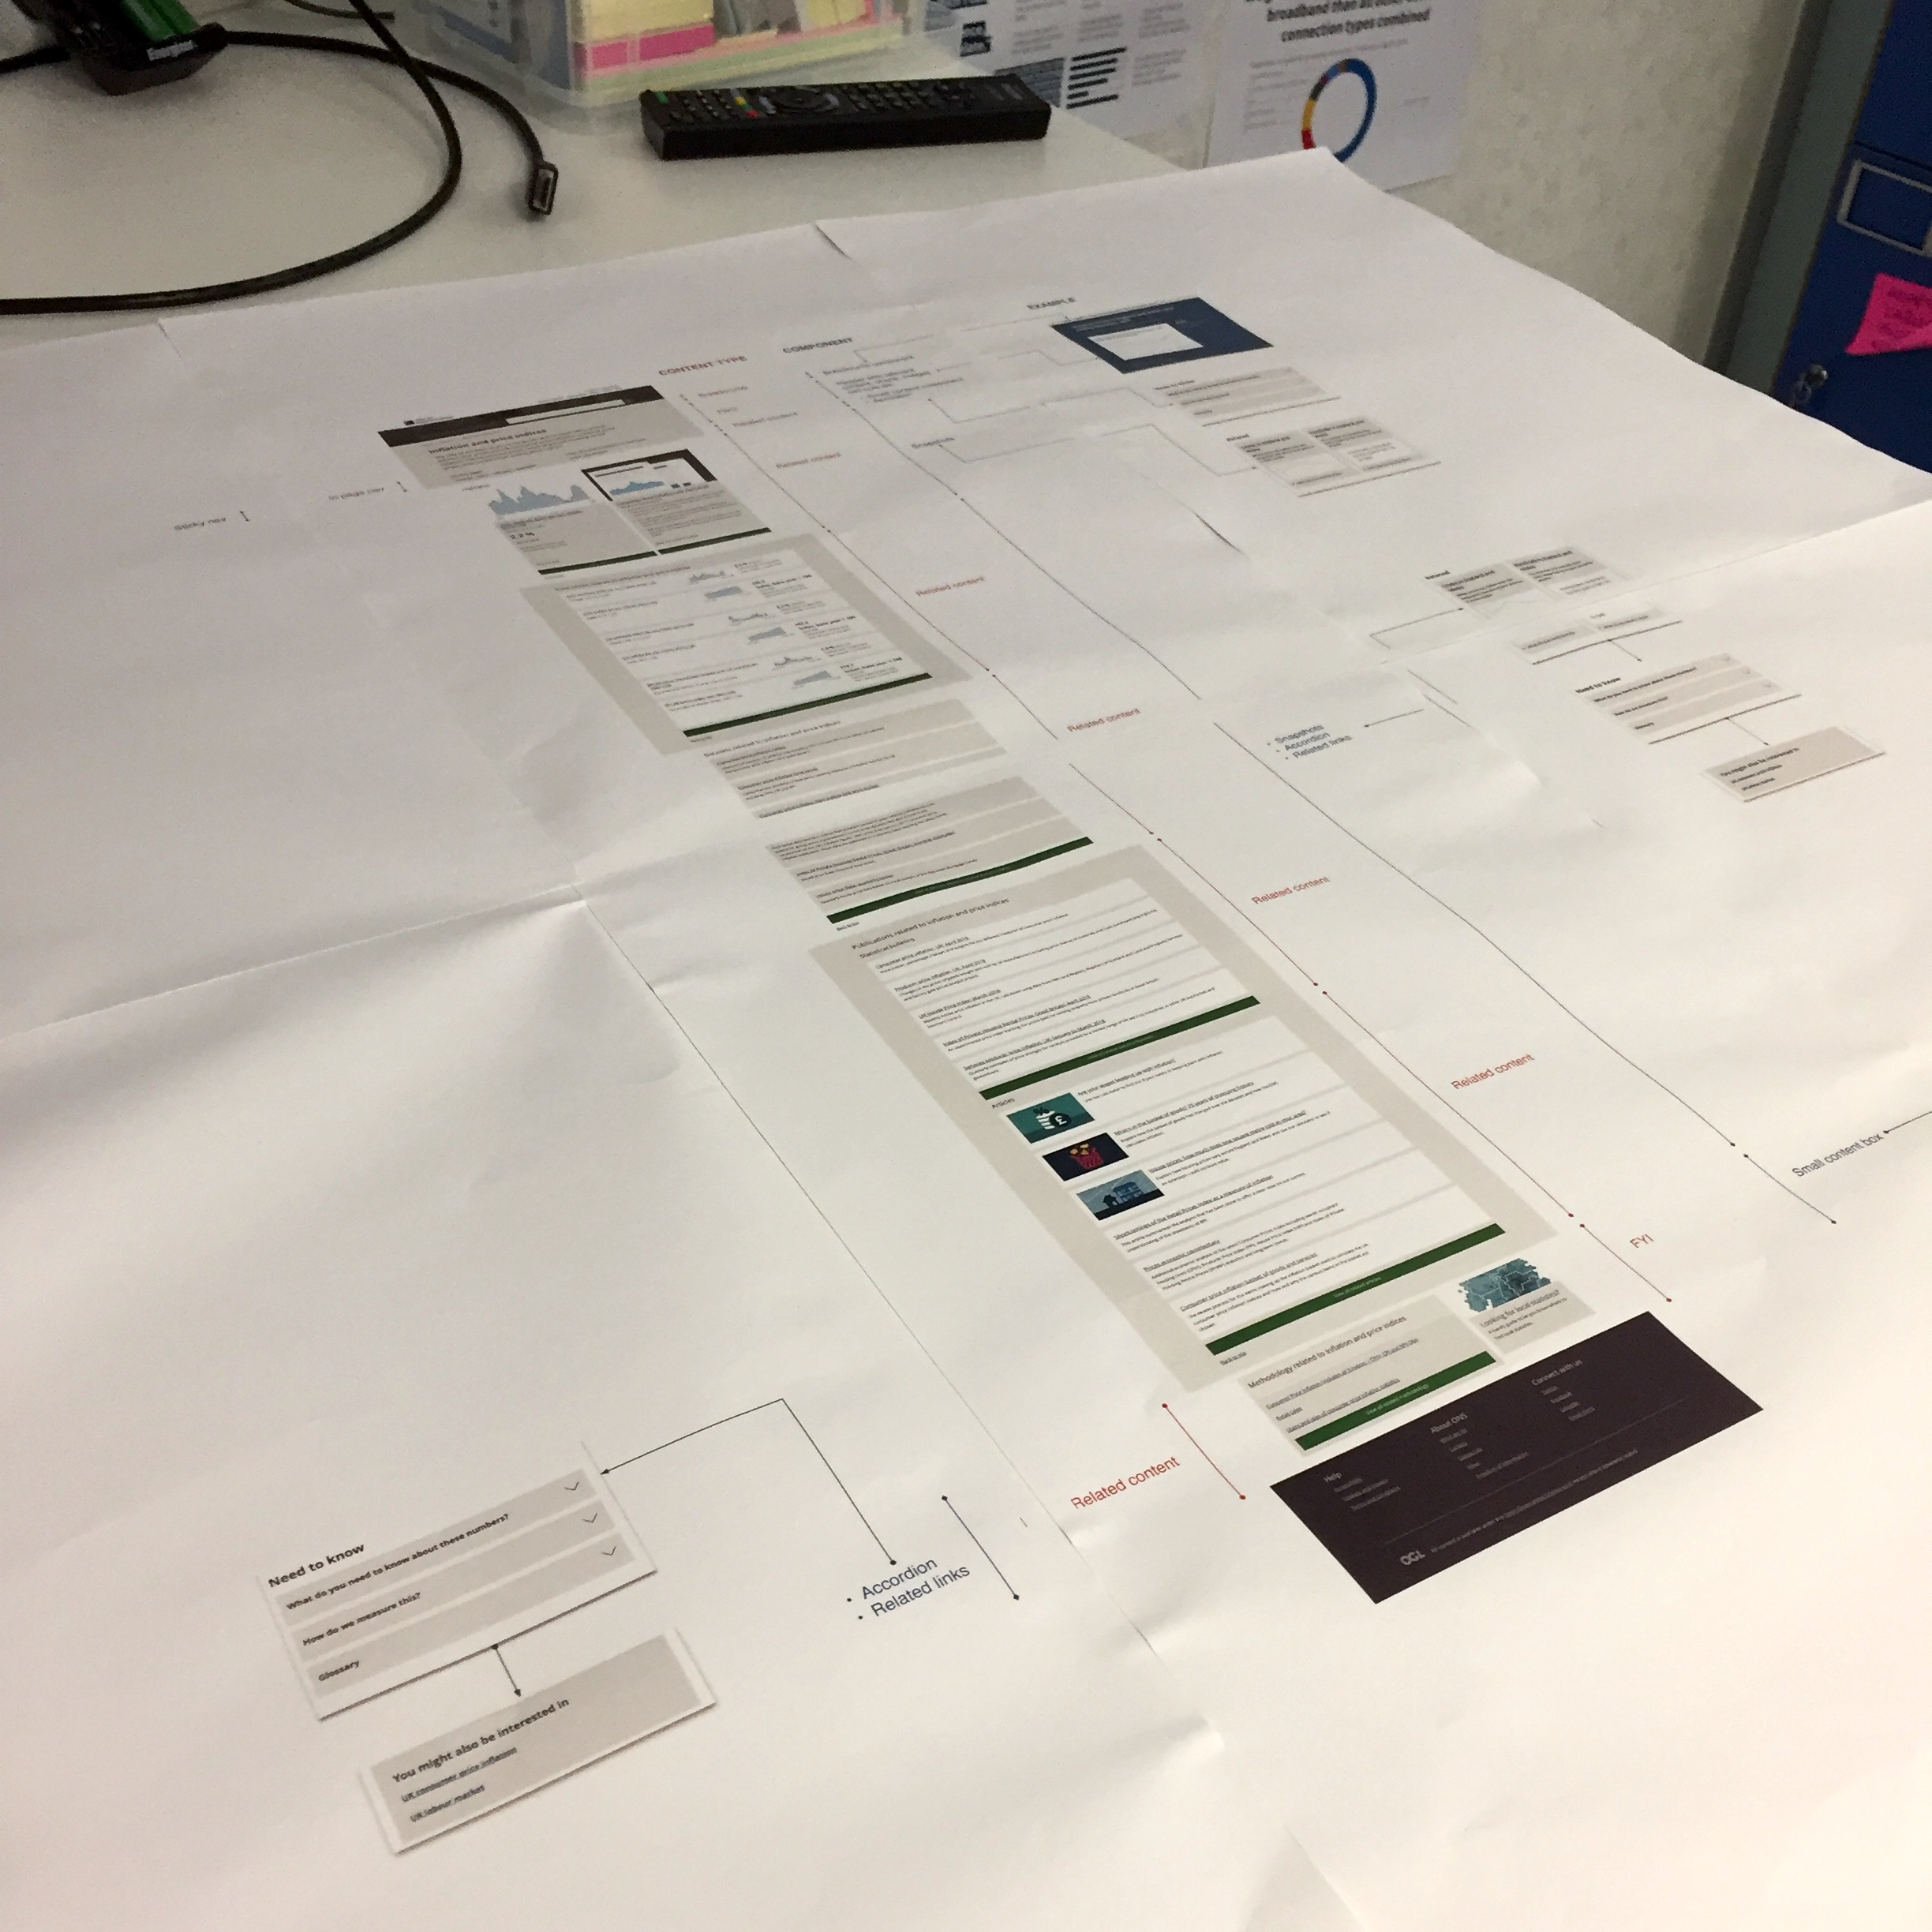 Annotated print outs of the ONS website